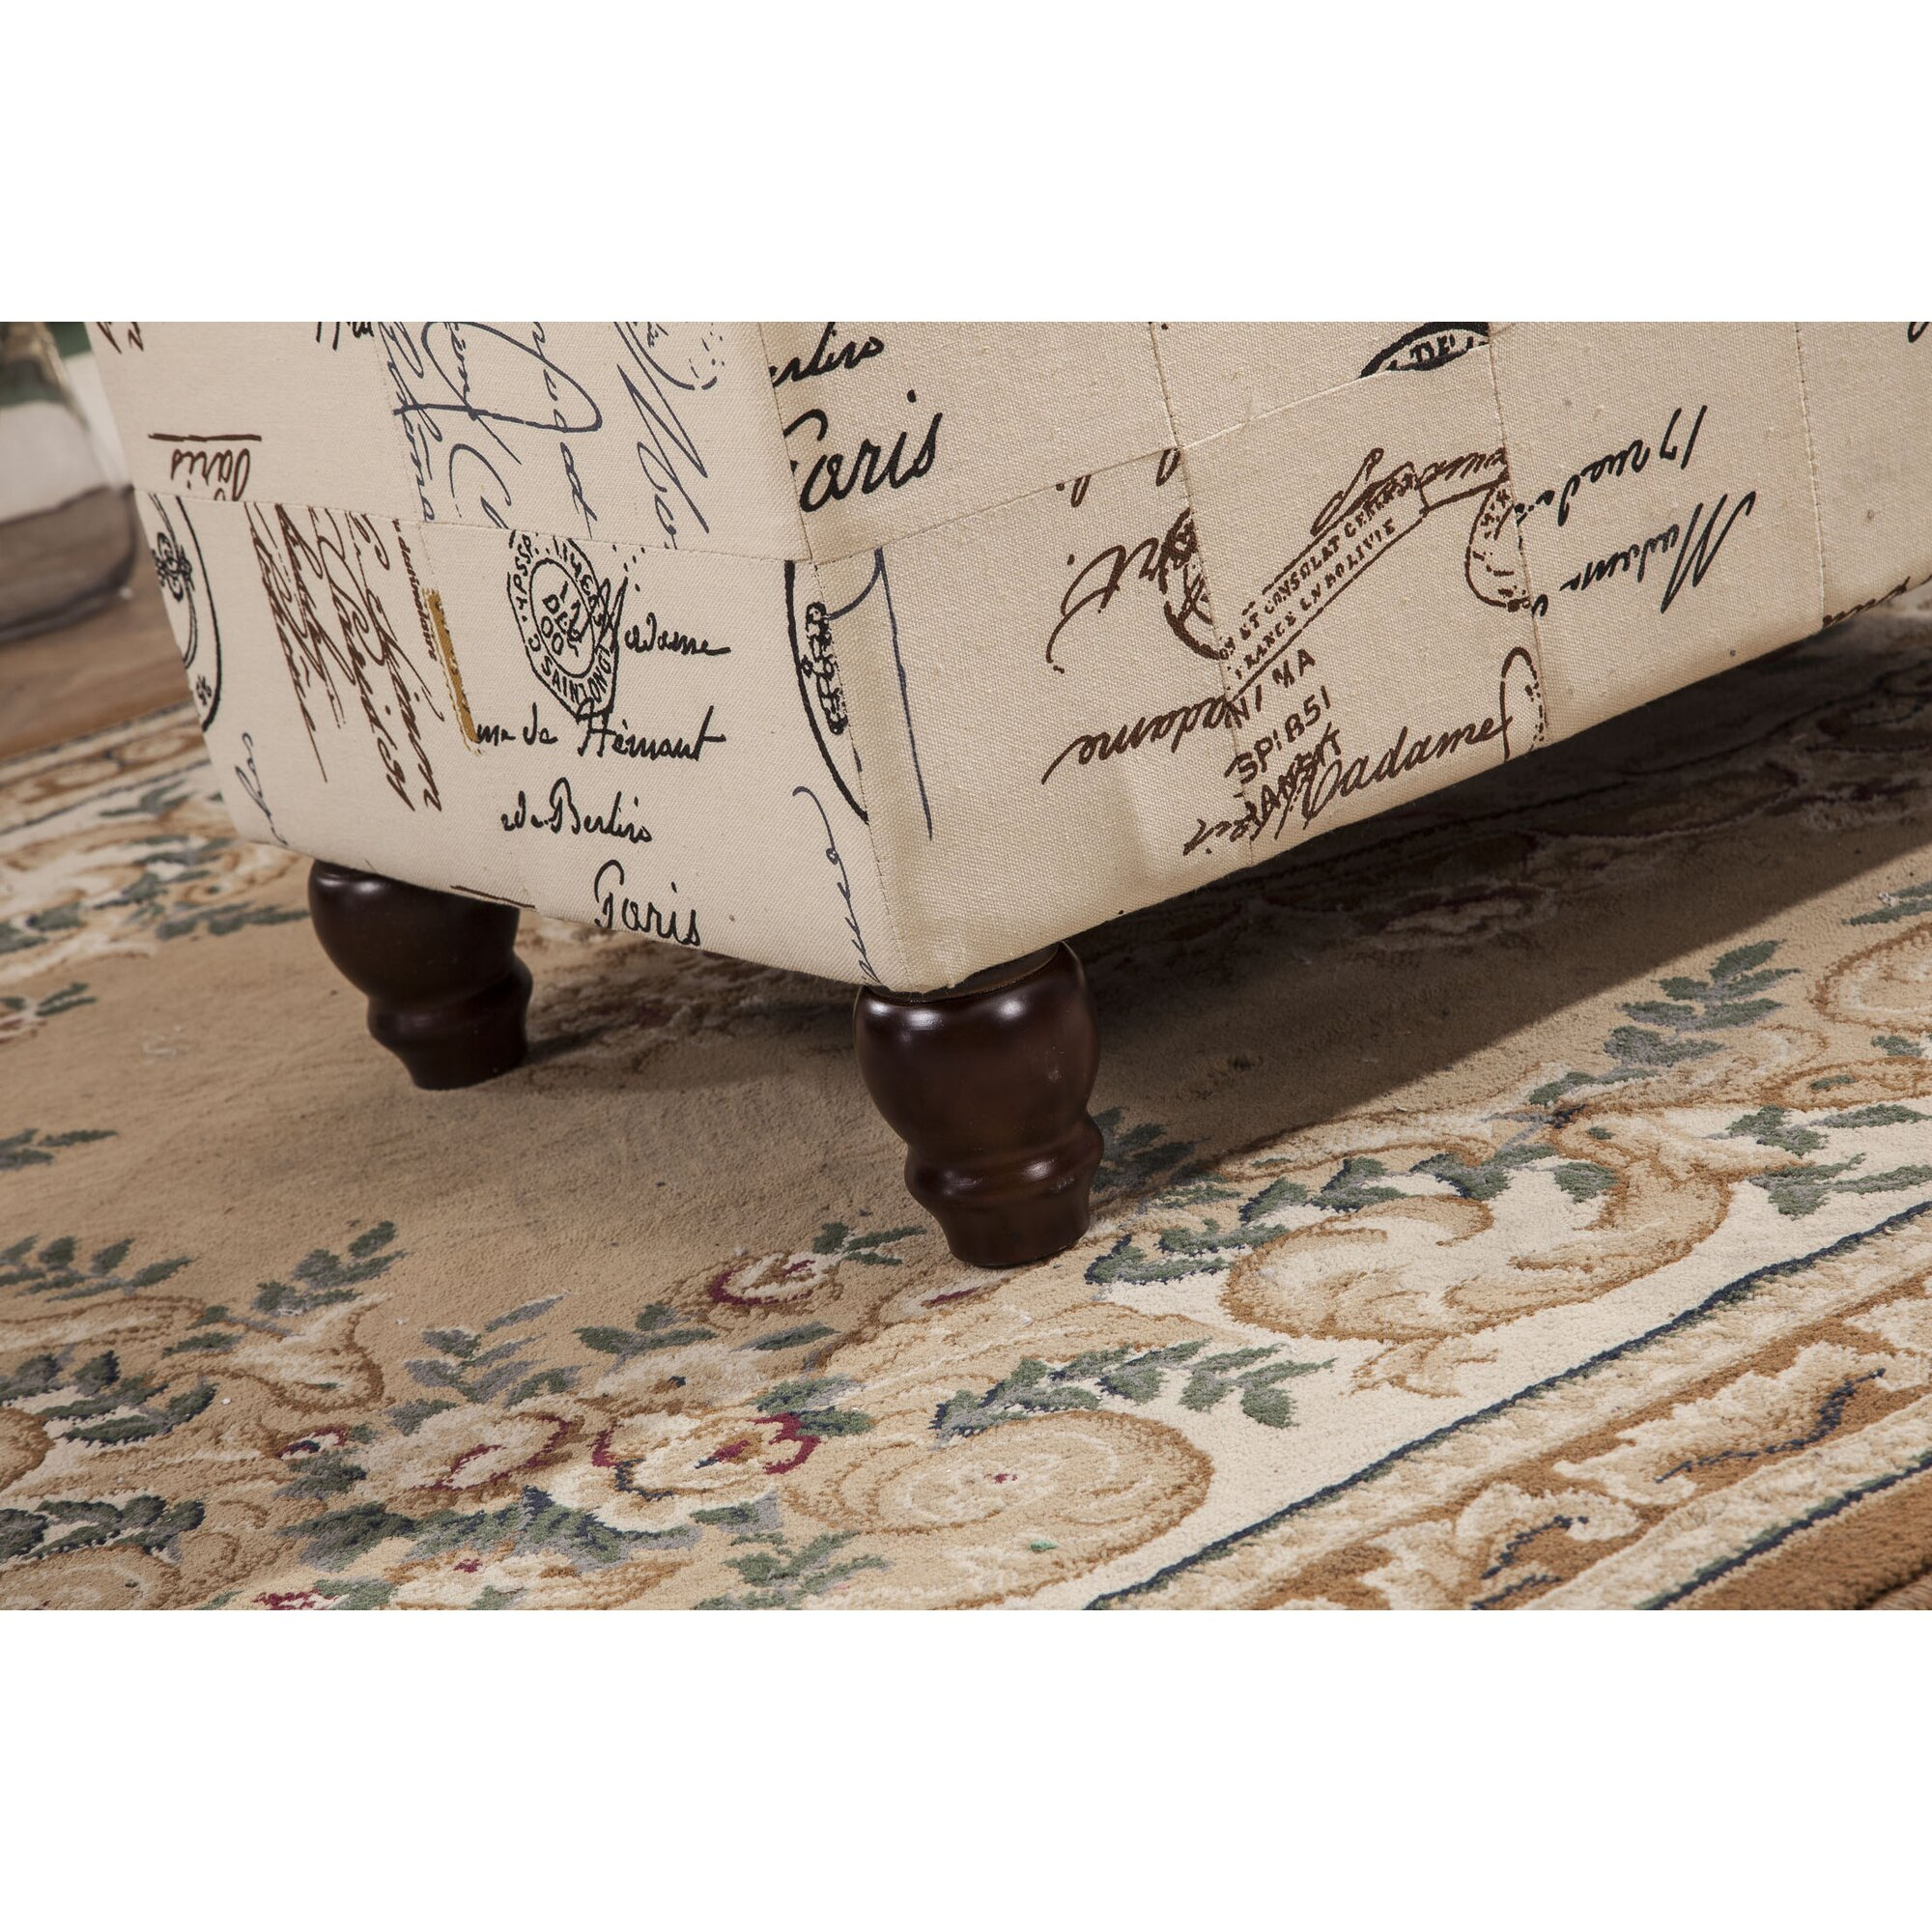 Bellasario Collection French Writing Postmark Print Tufted Wood ...